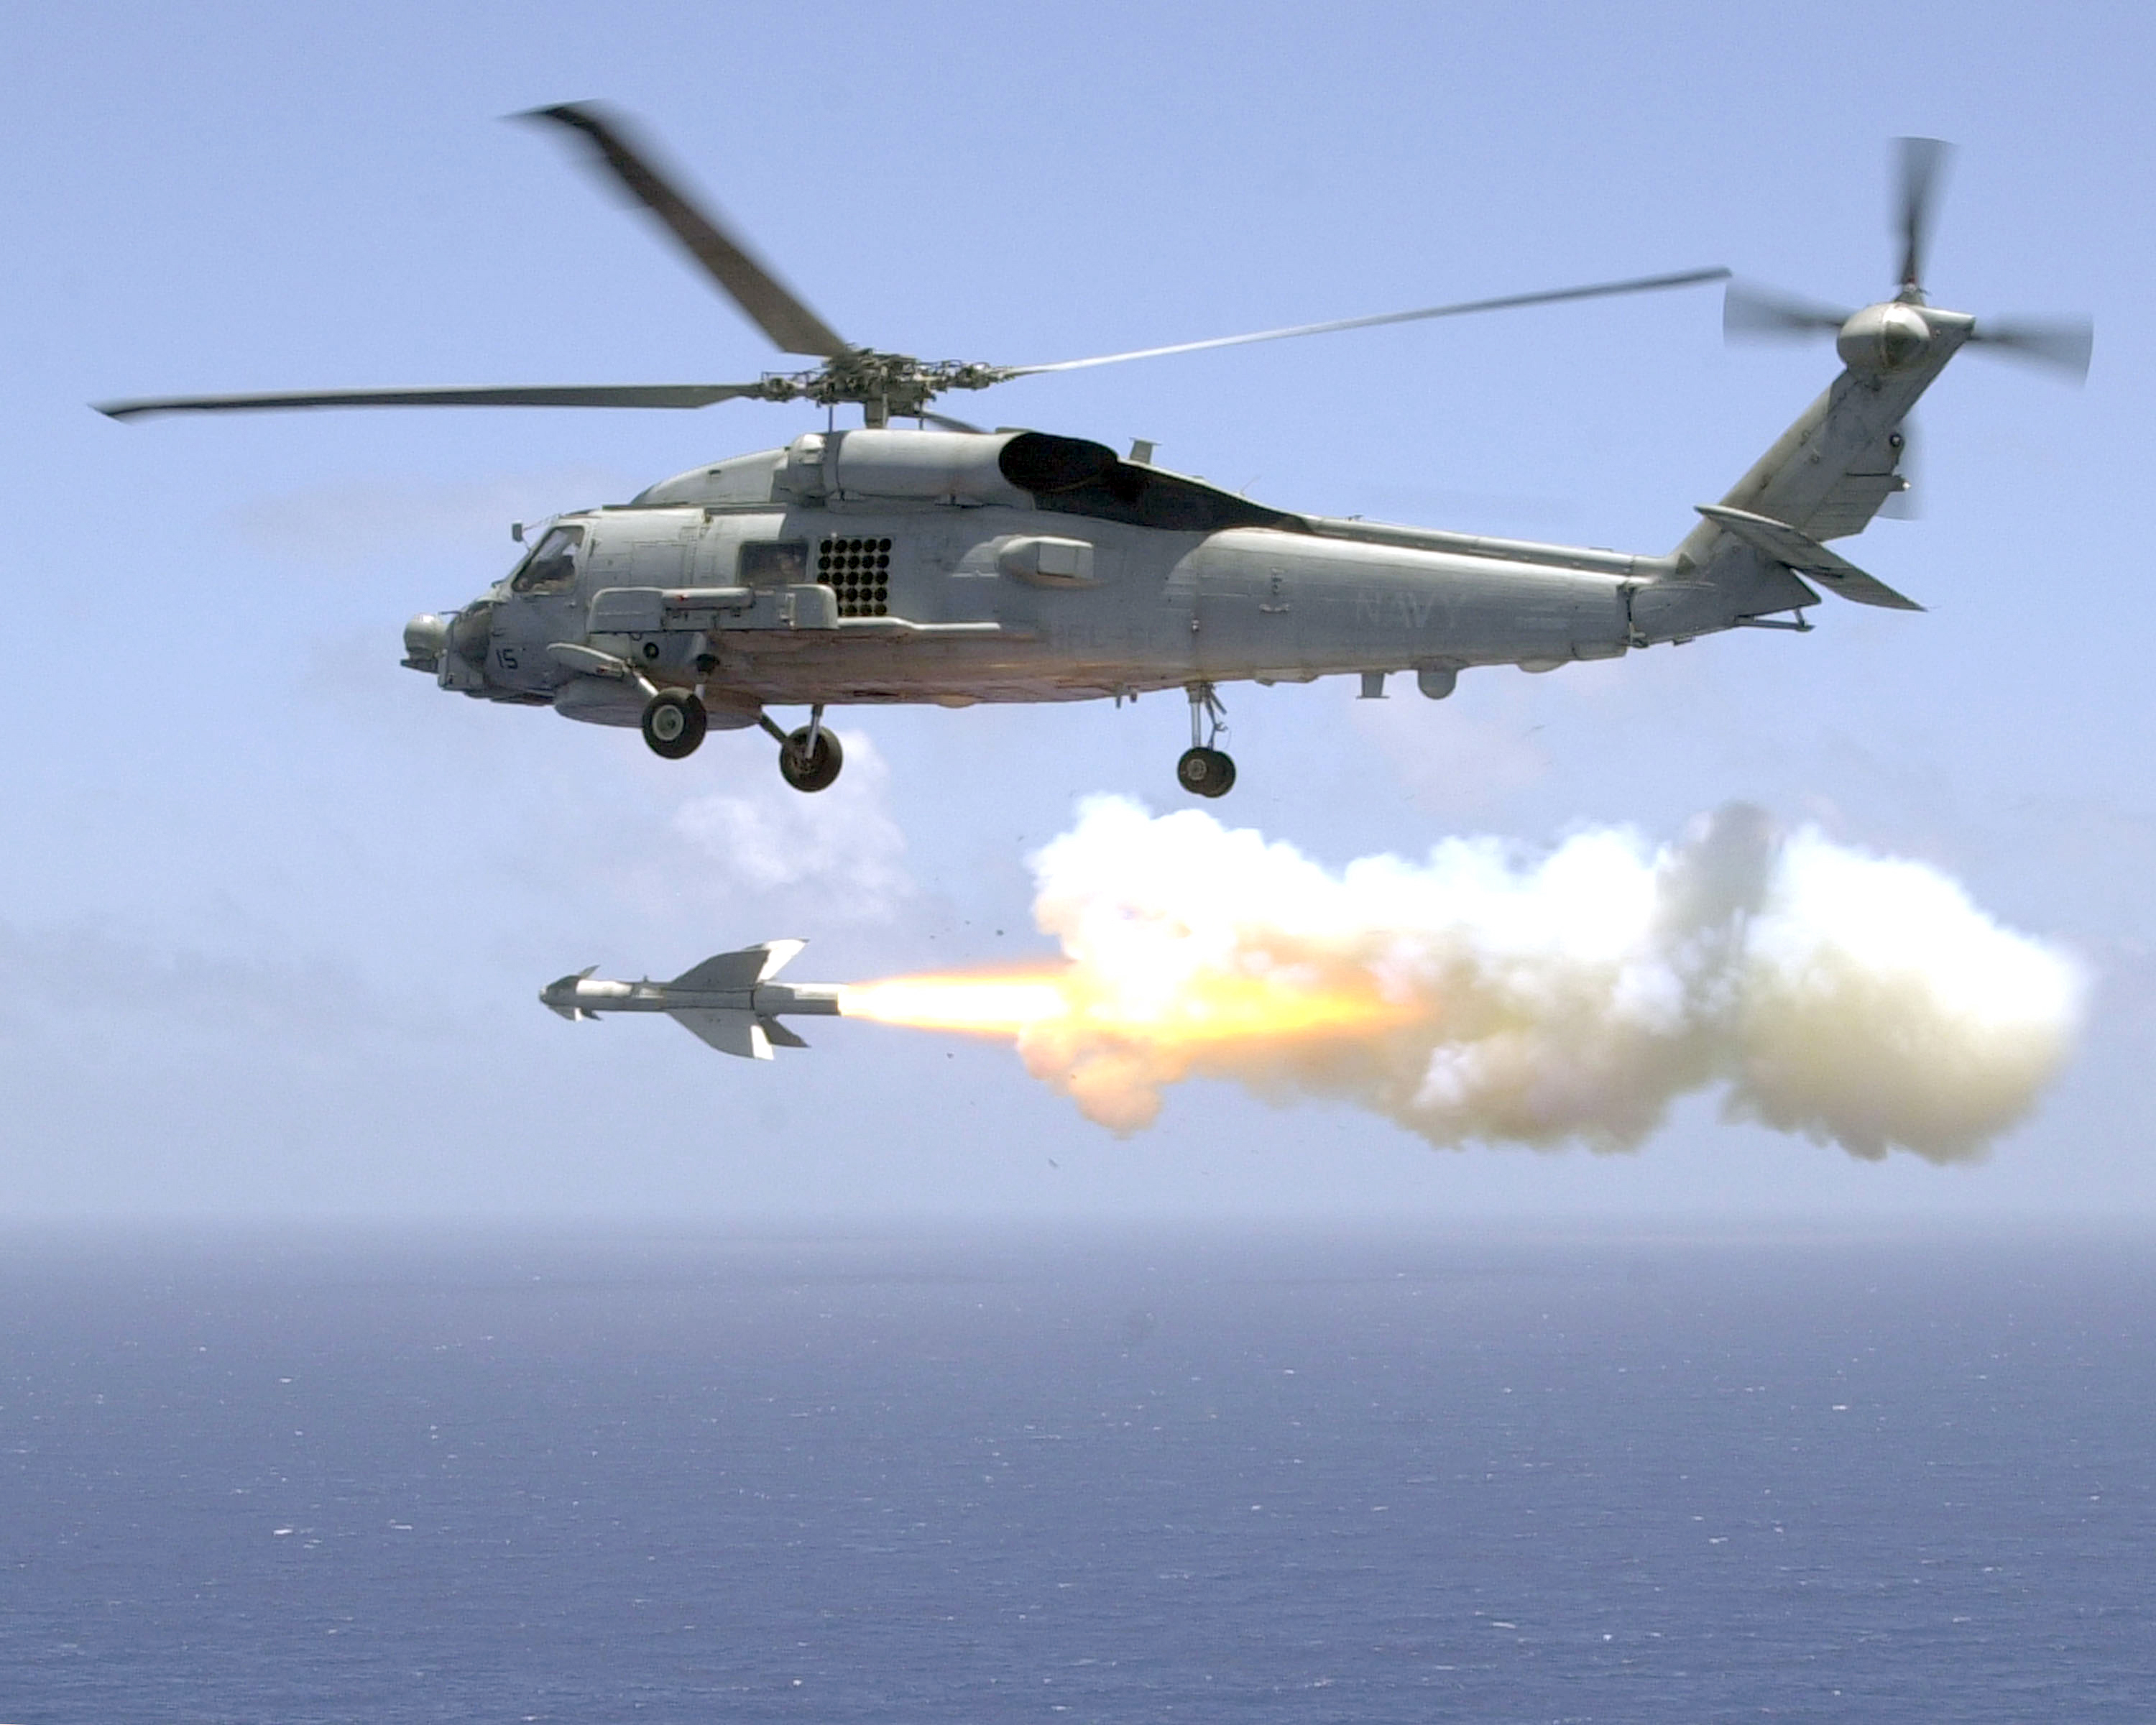 Free download high resolution image - free image free photo free stock image public domain picture -Helicopter Antisubmarine Light Five One fires an AGM-119